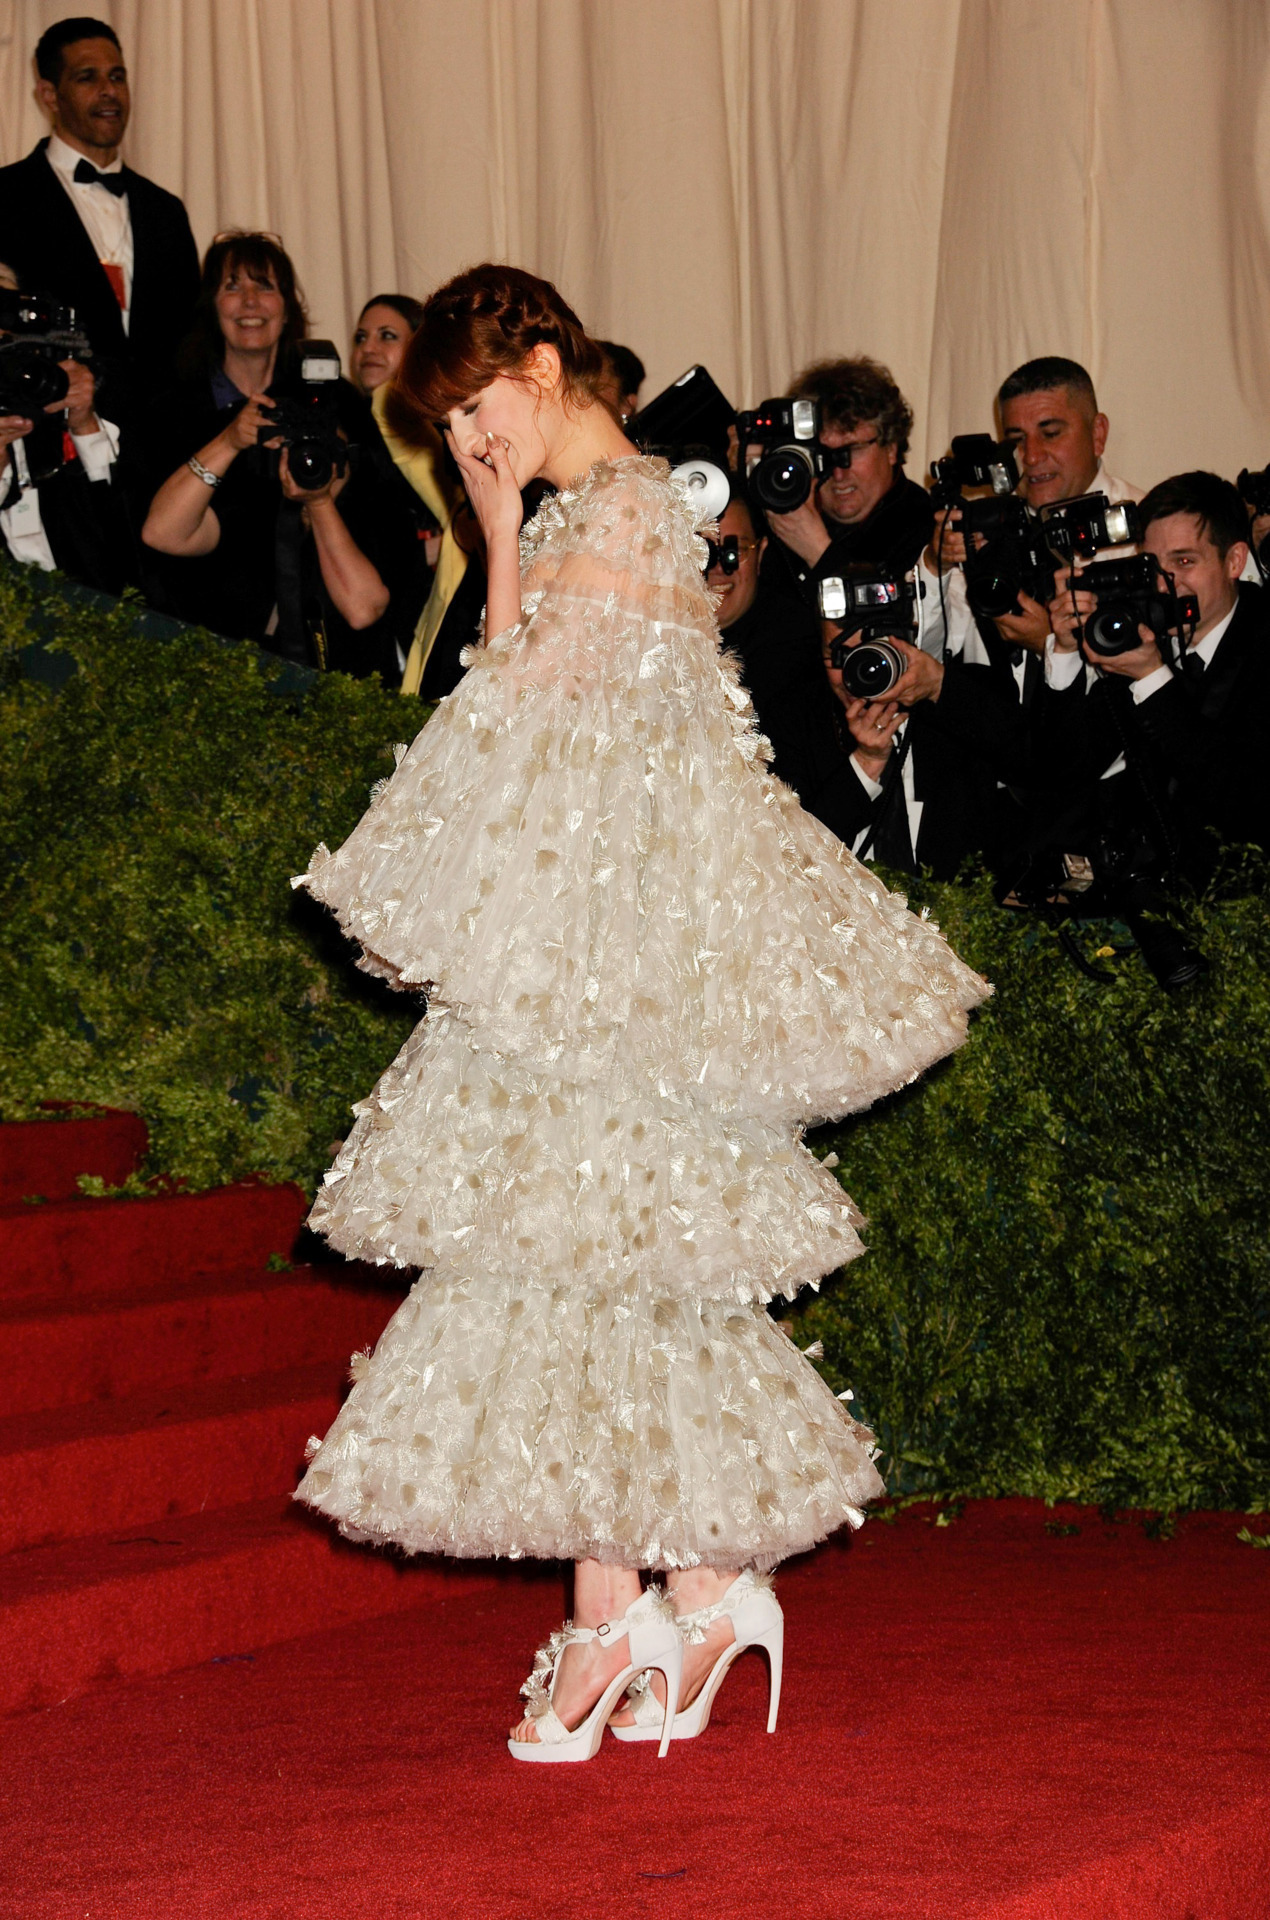 Florence Welch in Alexander McQueen at the 2012 Costume Gala, May 7th